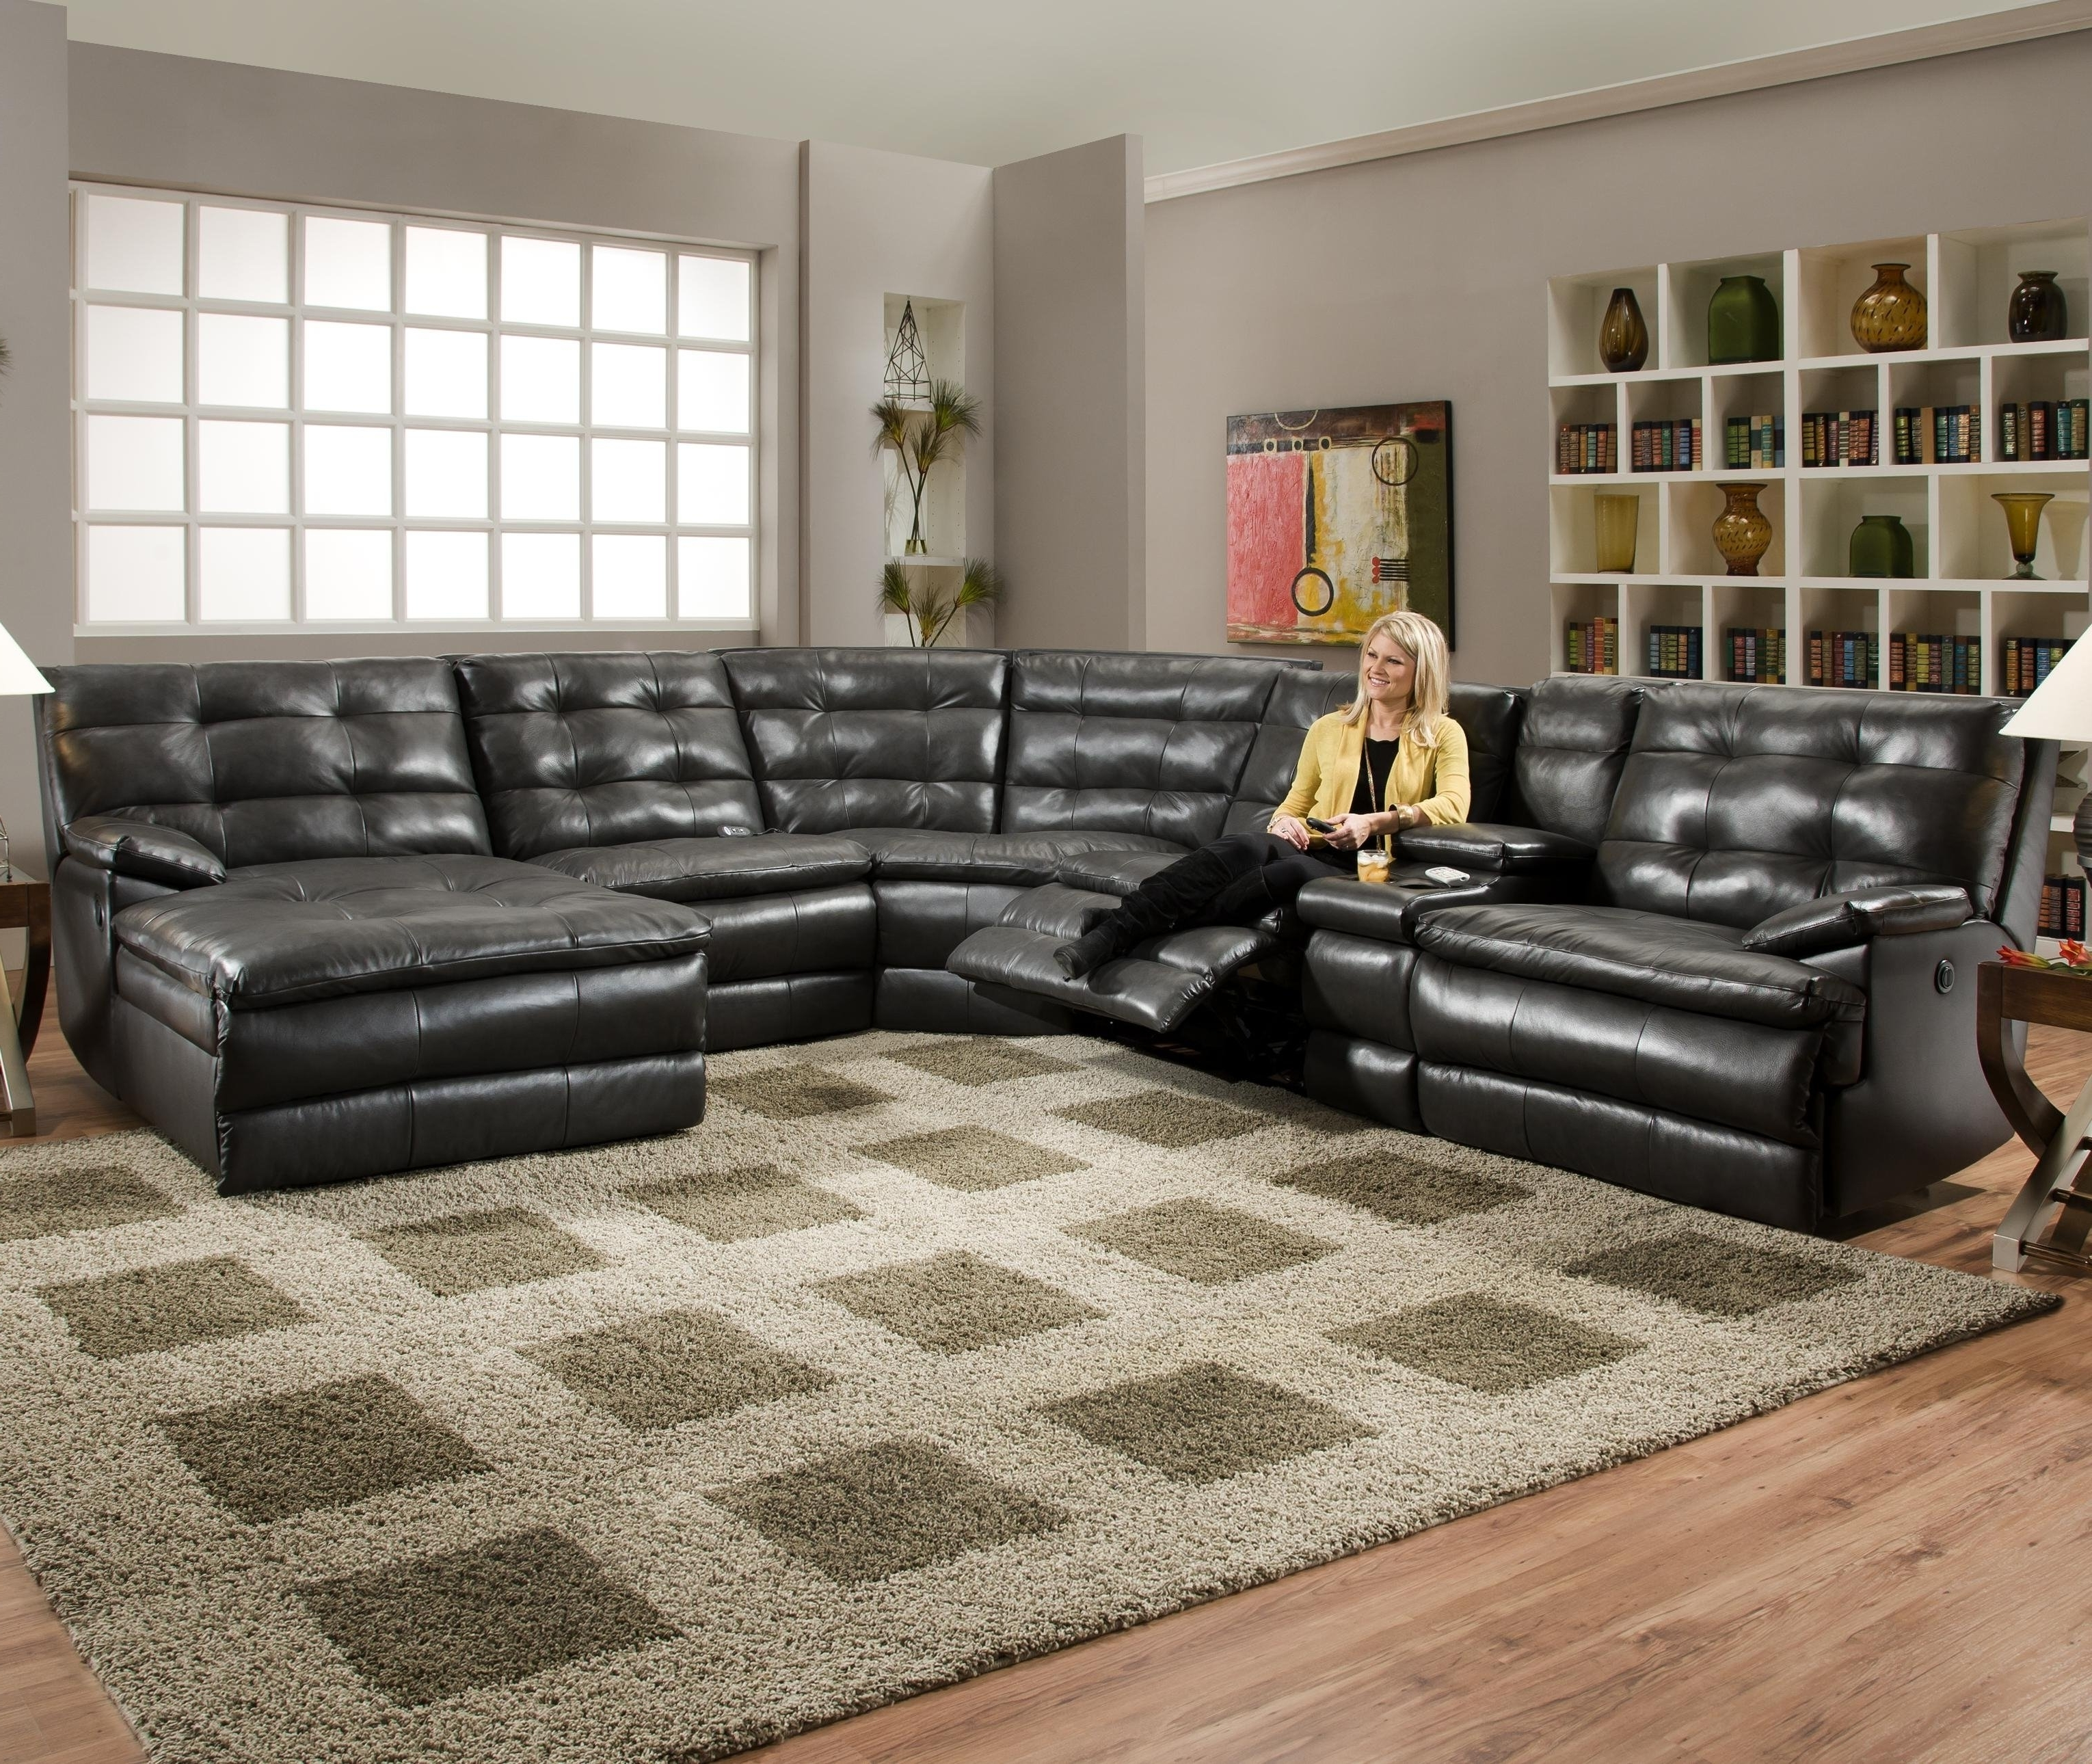 Magnificent Large Sectional Sofas — The Kienandsweet Furnitures Within Trendy Extra Large Sectional Sofas (View 13 of 20)